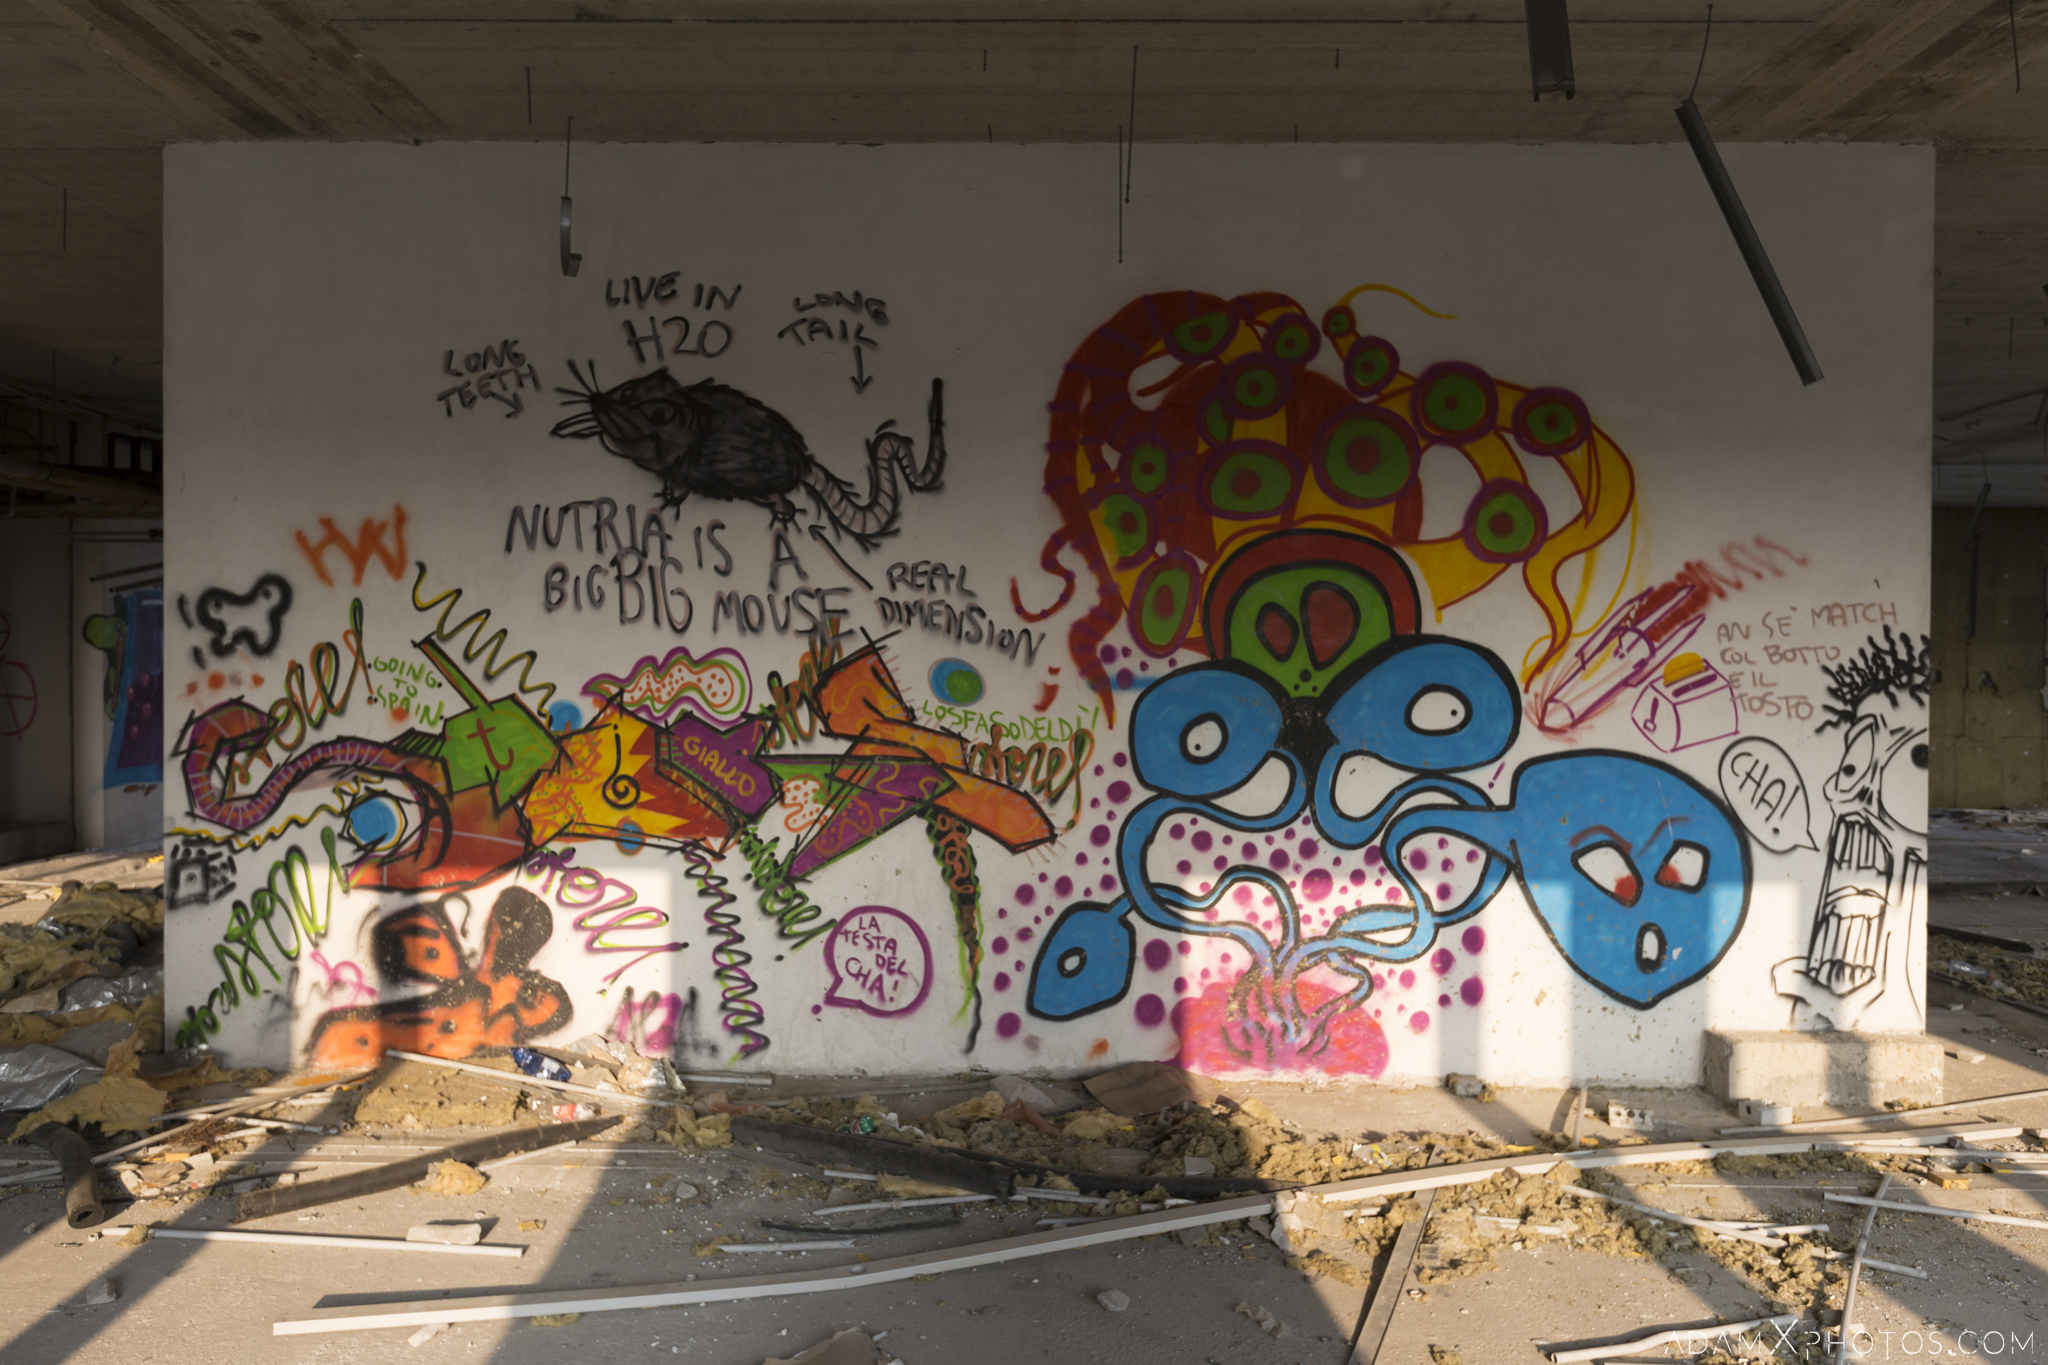 Colourful graffiti La fabbrica dei colori factory Adam X Urban Exploration Italy Italia Access 2016 Abandoned decay lost forgotten derelict location creepy haunting eerie